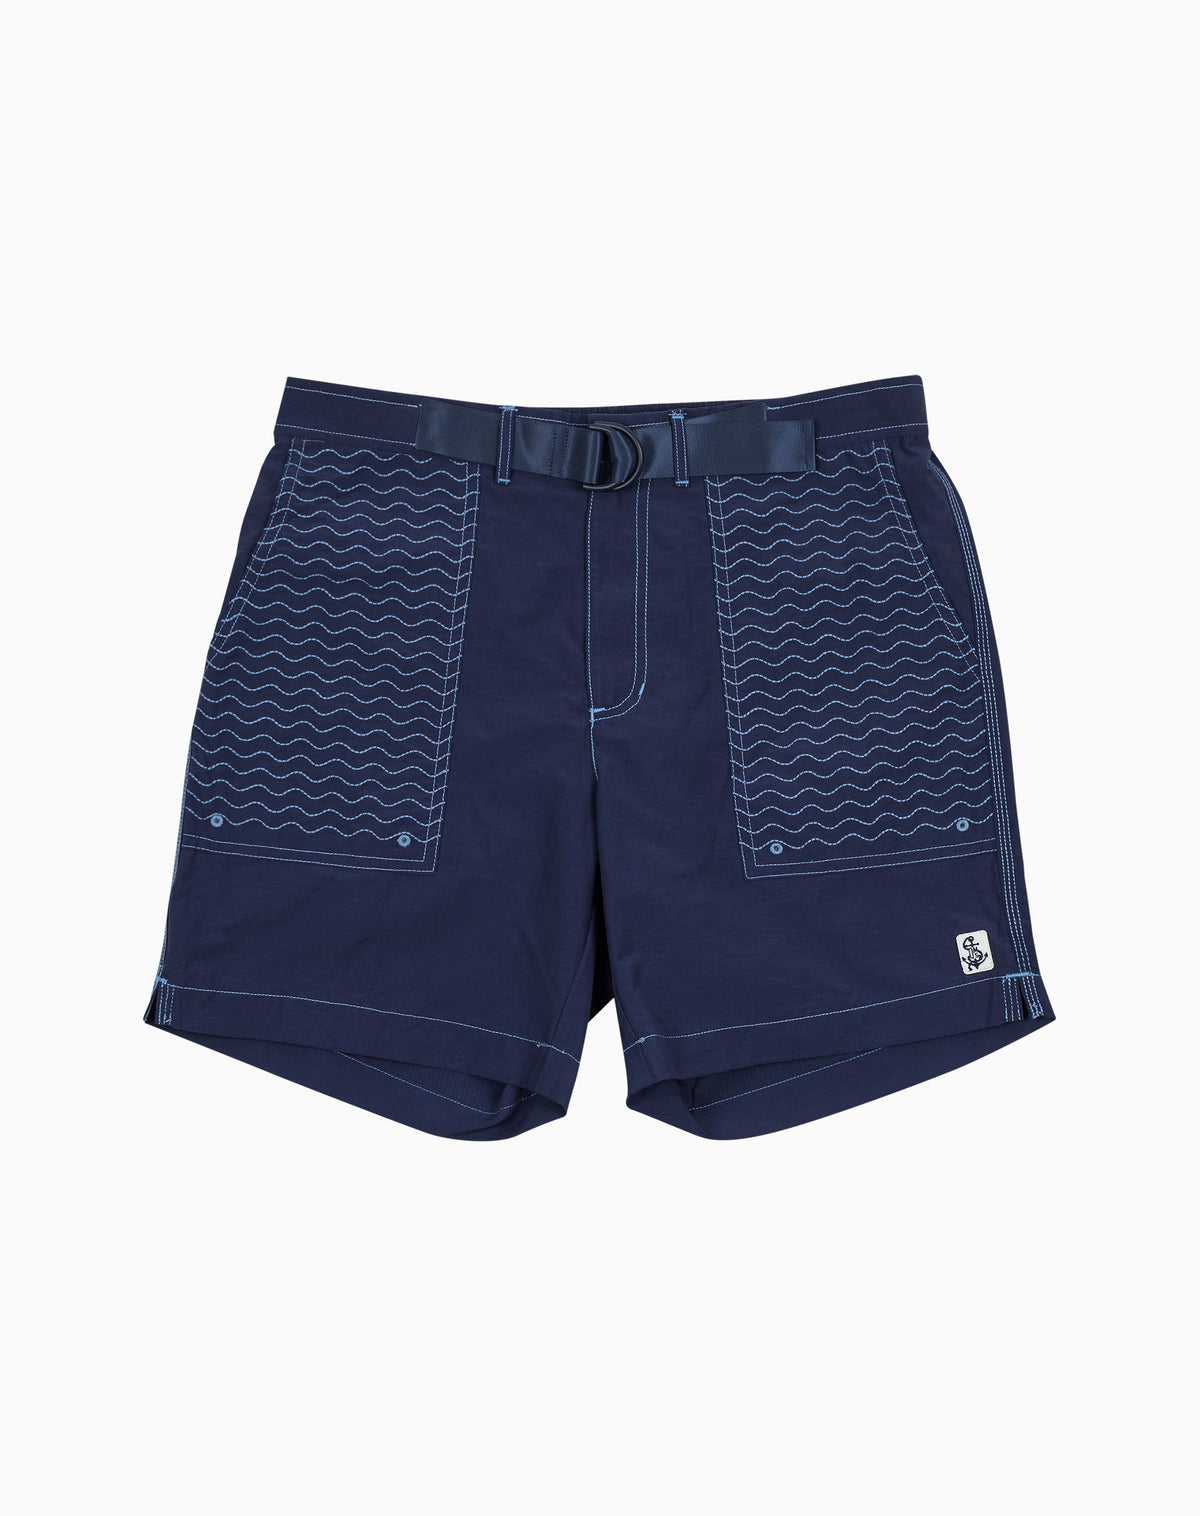 Wavy Utility Trunk in Navy